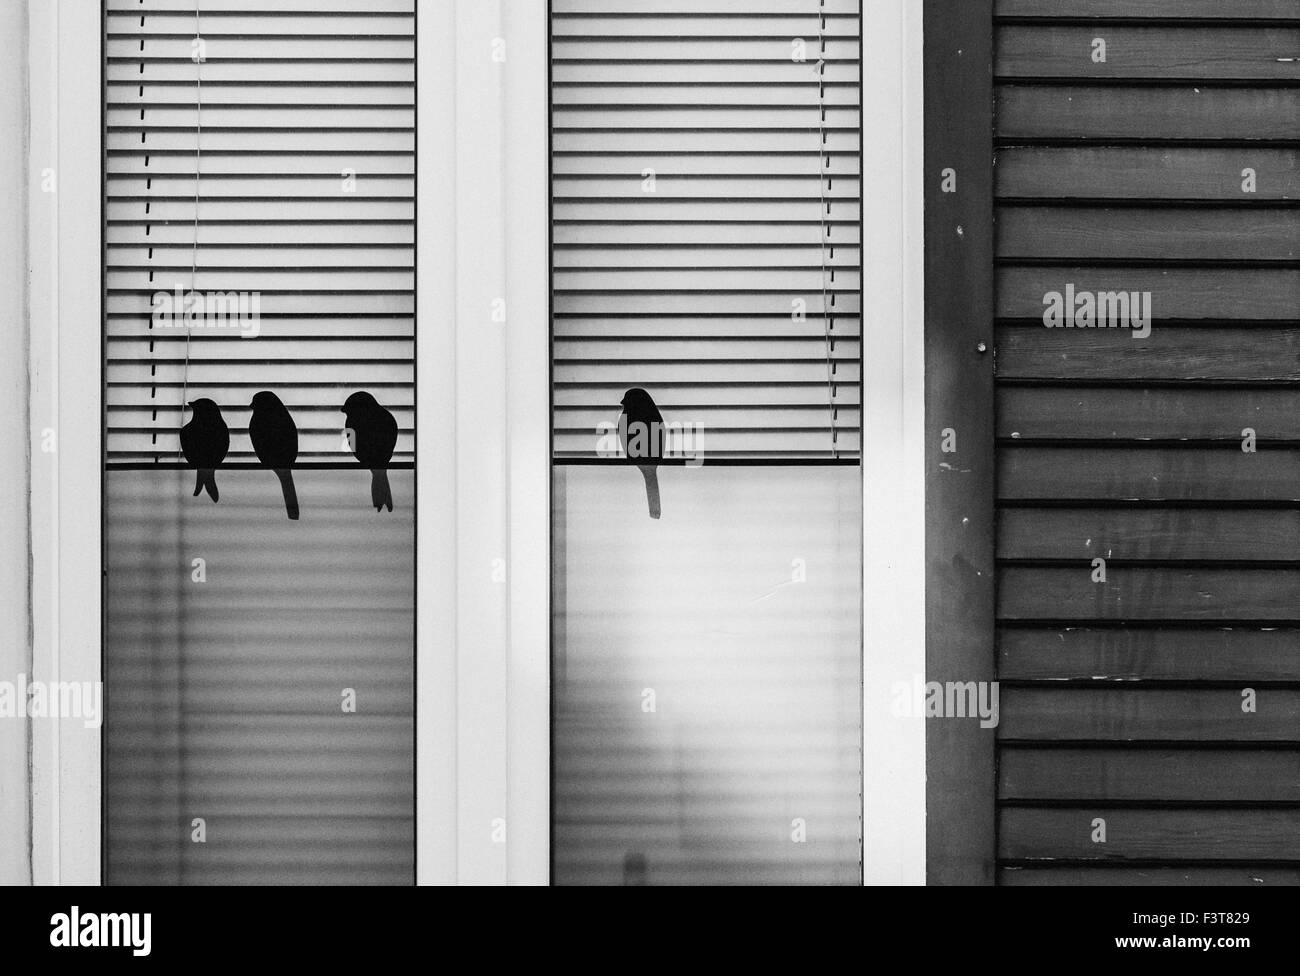 Black birds at the window - Stock Image